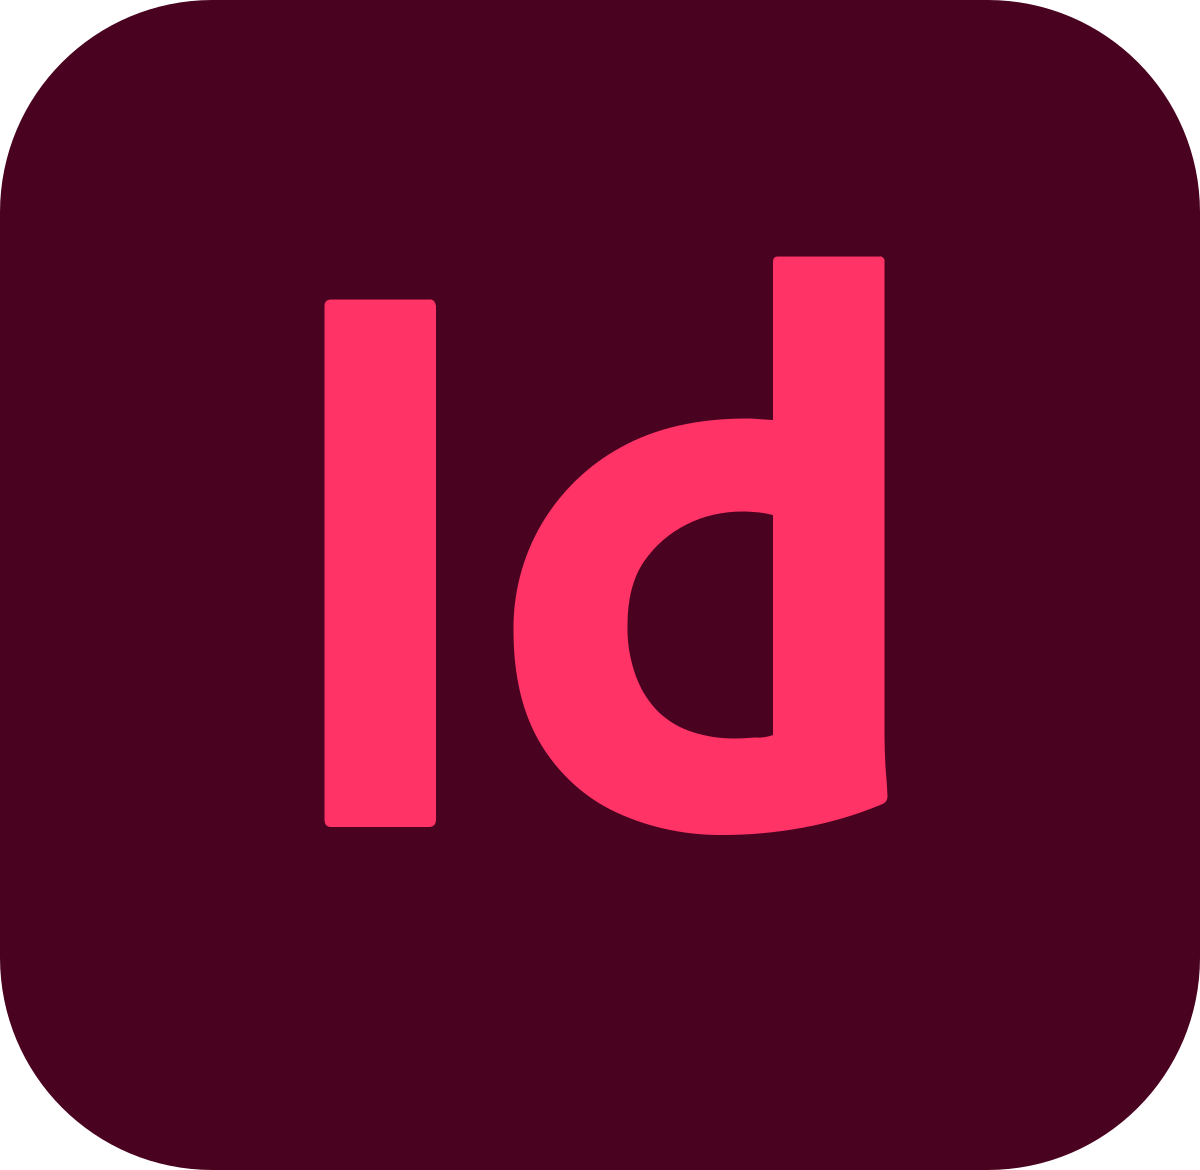 Adobe InDesign 2021 v16.0.1.109 Full version